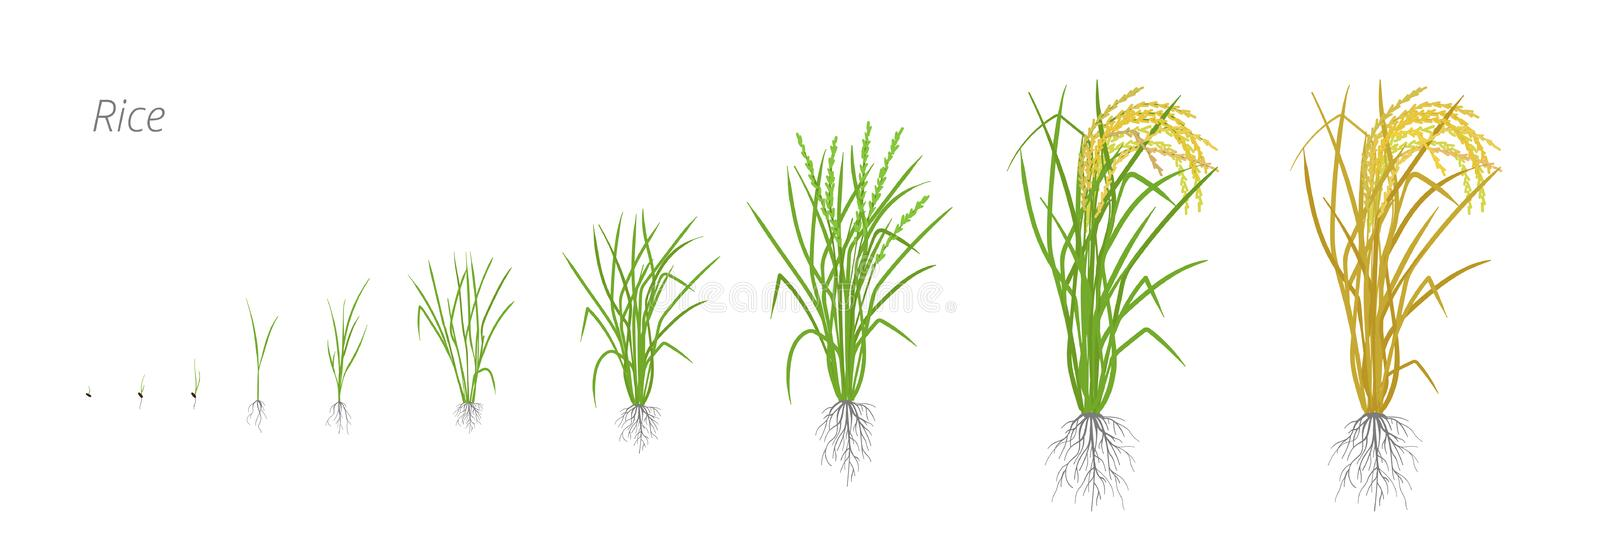 Growth stages of rice plant. The life cycle. Rice increase phases. Oryza sativa. Ripening period. Vector illustration. Growth stages of rice plant. Rice vector illustration